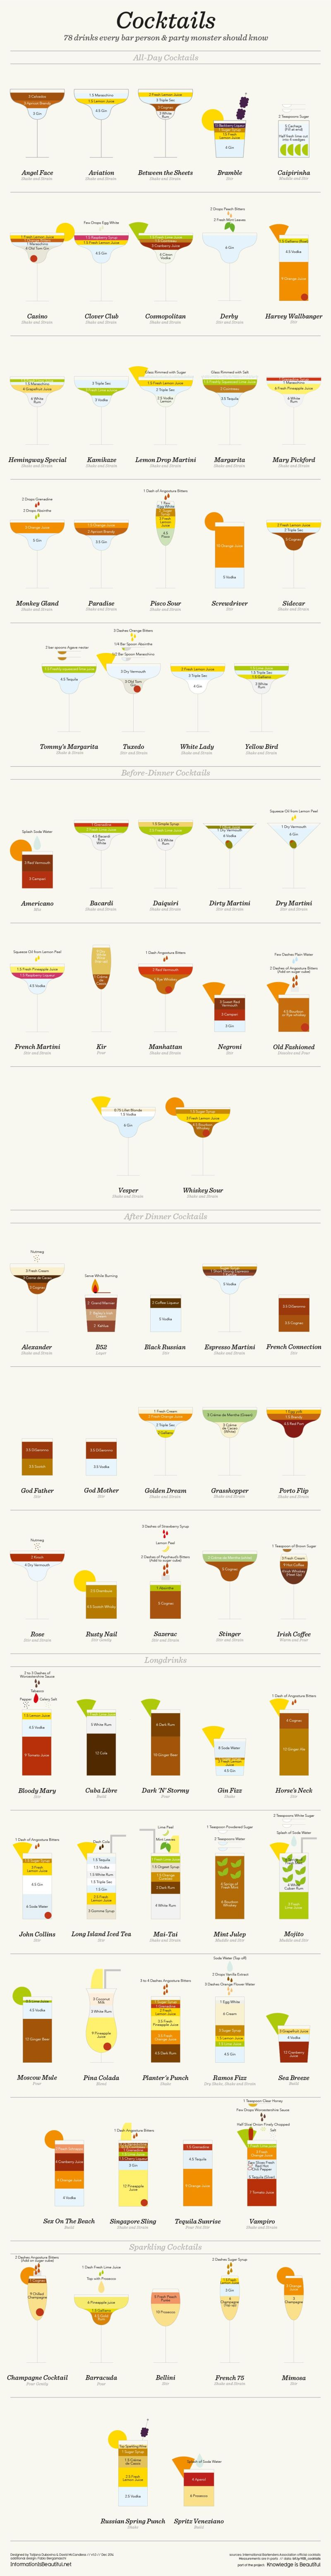 Infographic - 78 Cocktails For New Year's Eve